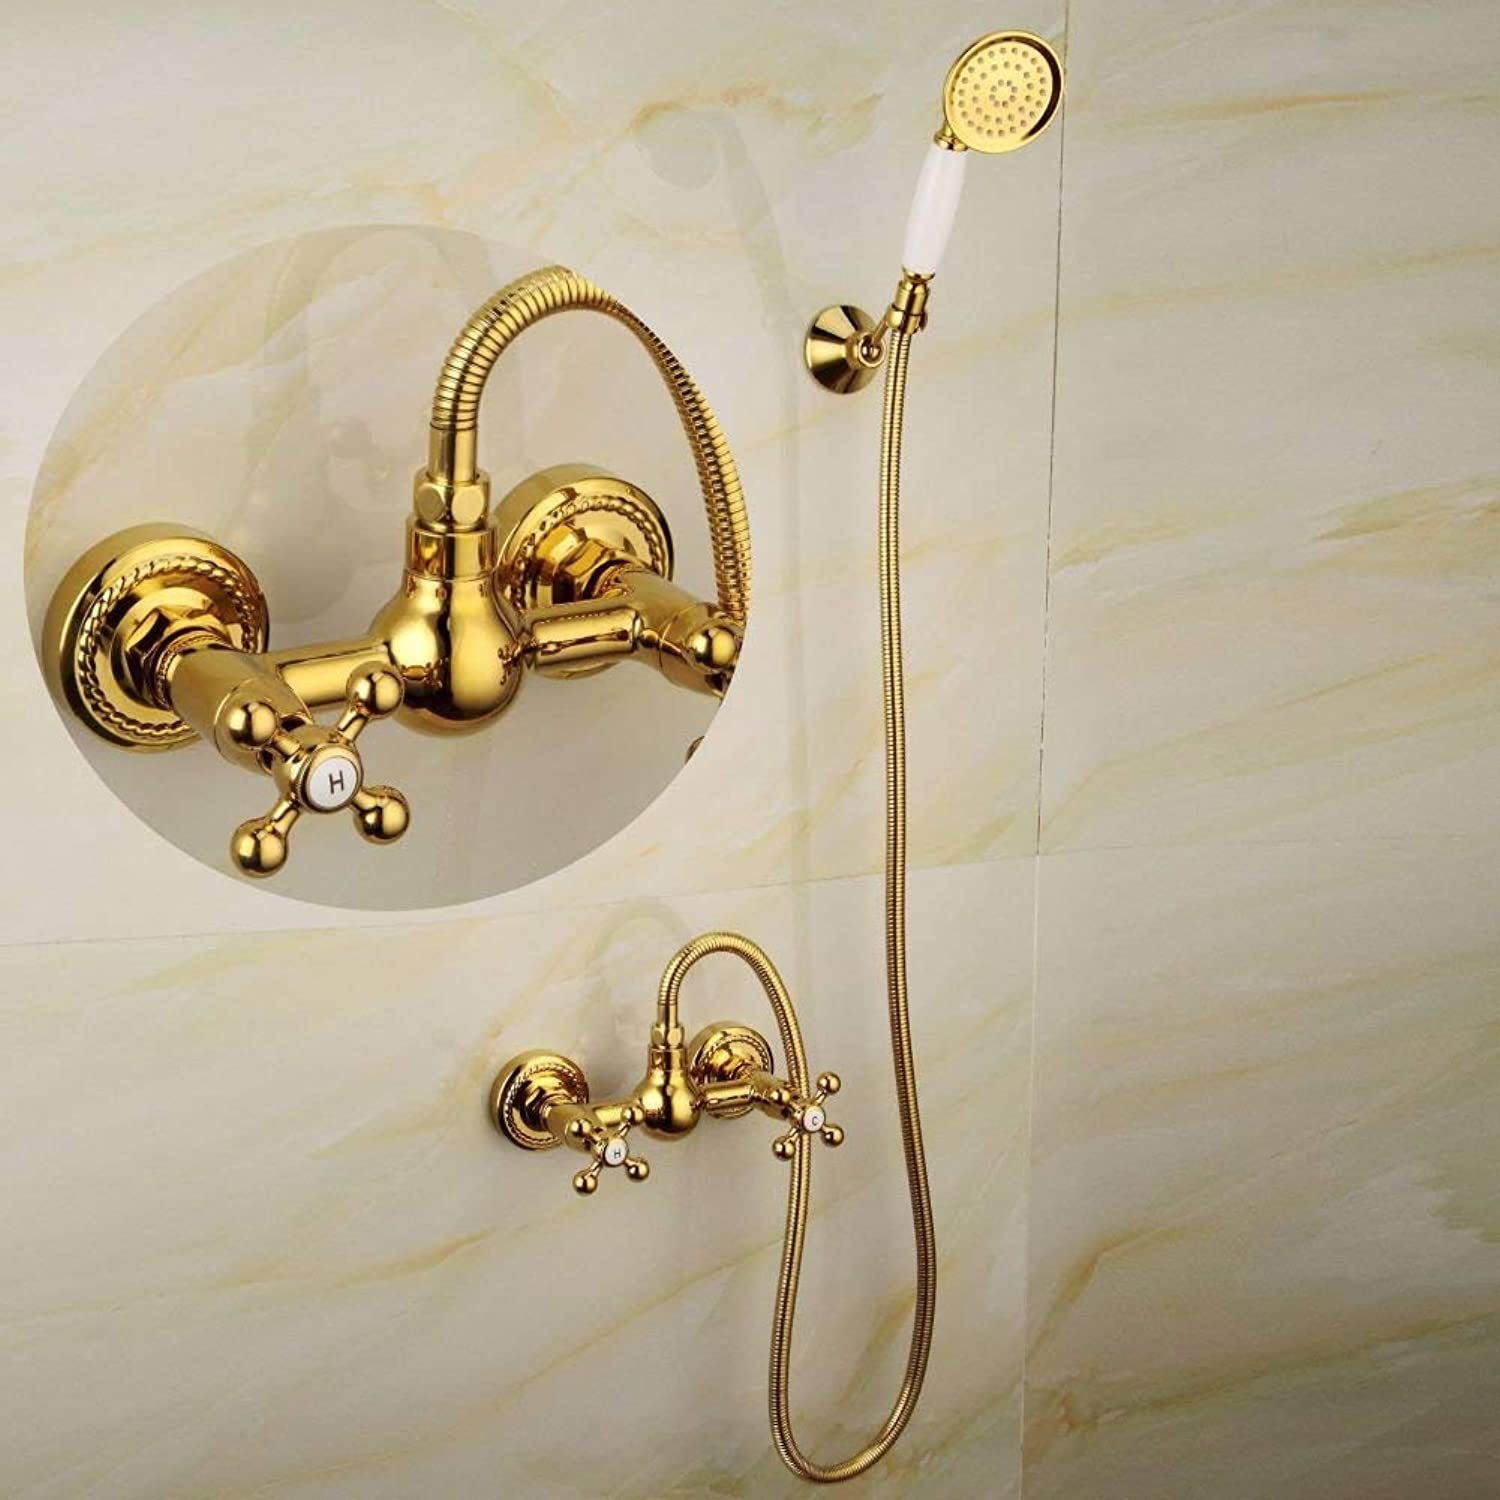 FFWFW shower set European Style gold Simple Shower Shower Full Copper Into the Wall Handheld Bathtub Shower Set